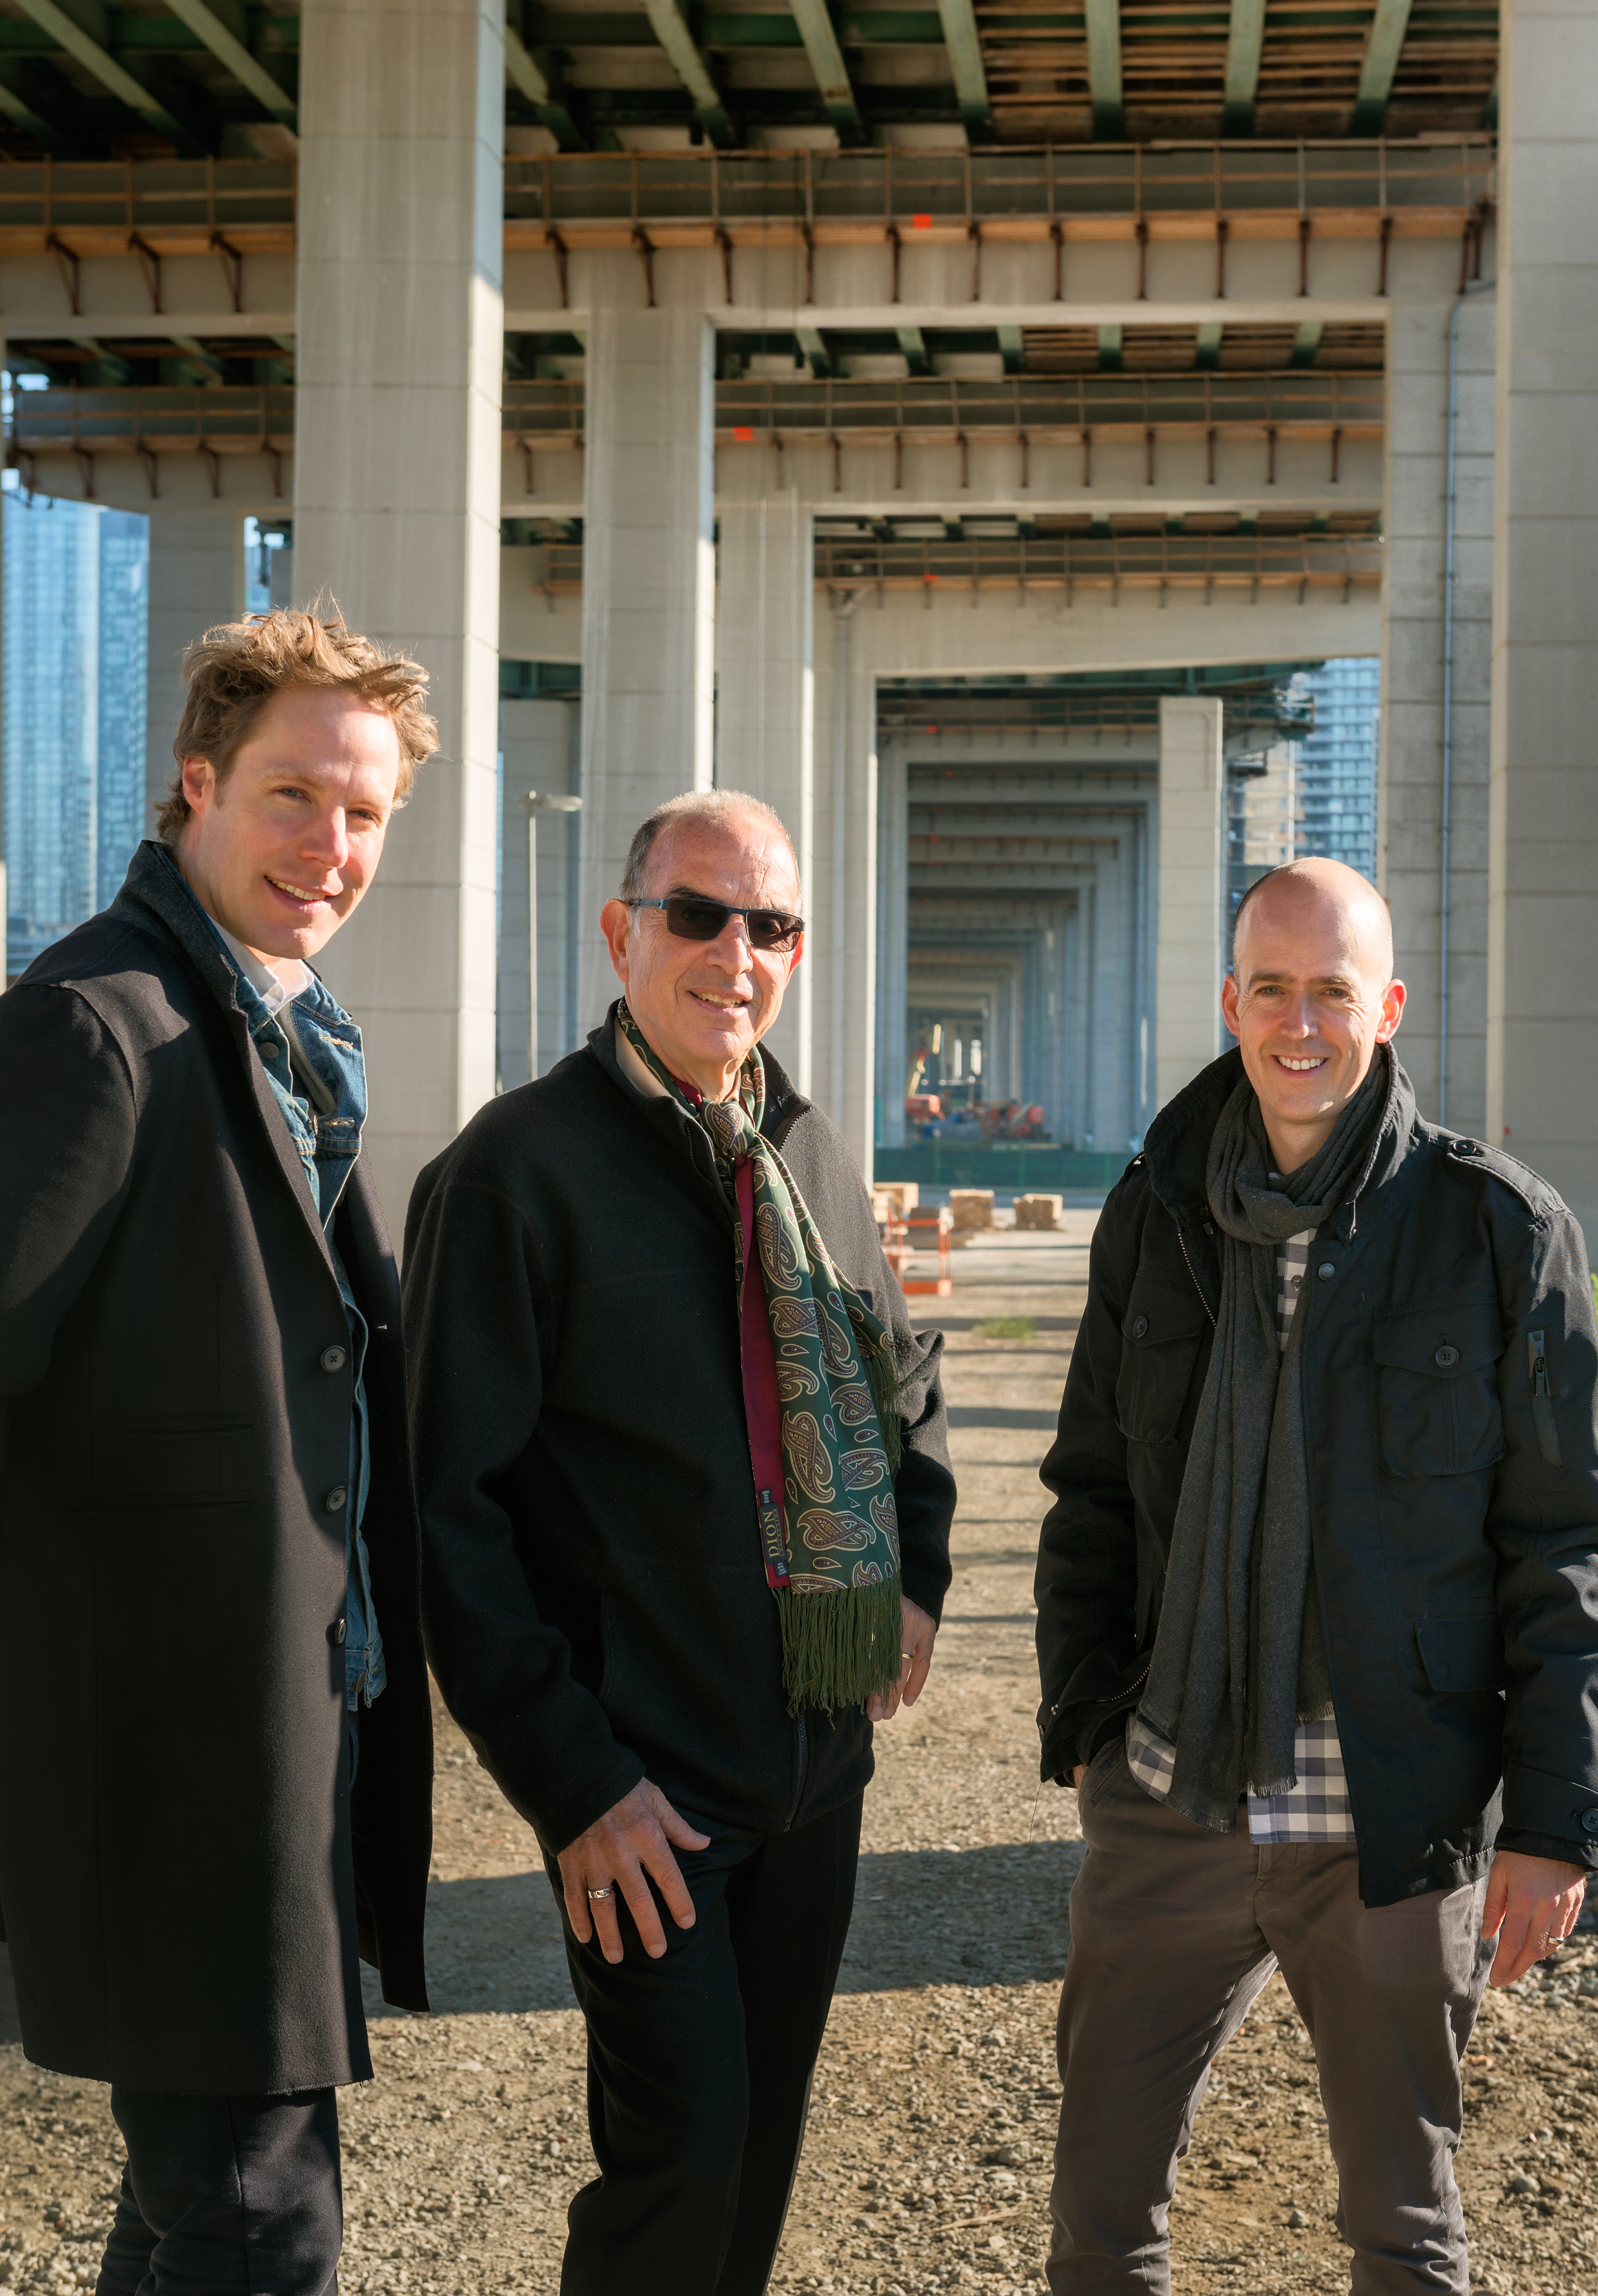 The design team, lead by urban designer Ken Greenberg (centre), and Marc Ryan (left) and Adam Nicklin (right) of landscape architecture studio, PUBLIC WORK Photo by Bob Gundu